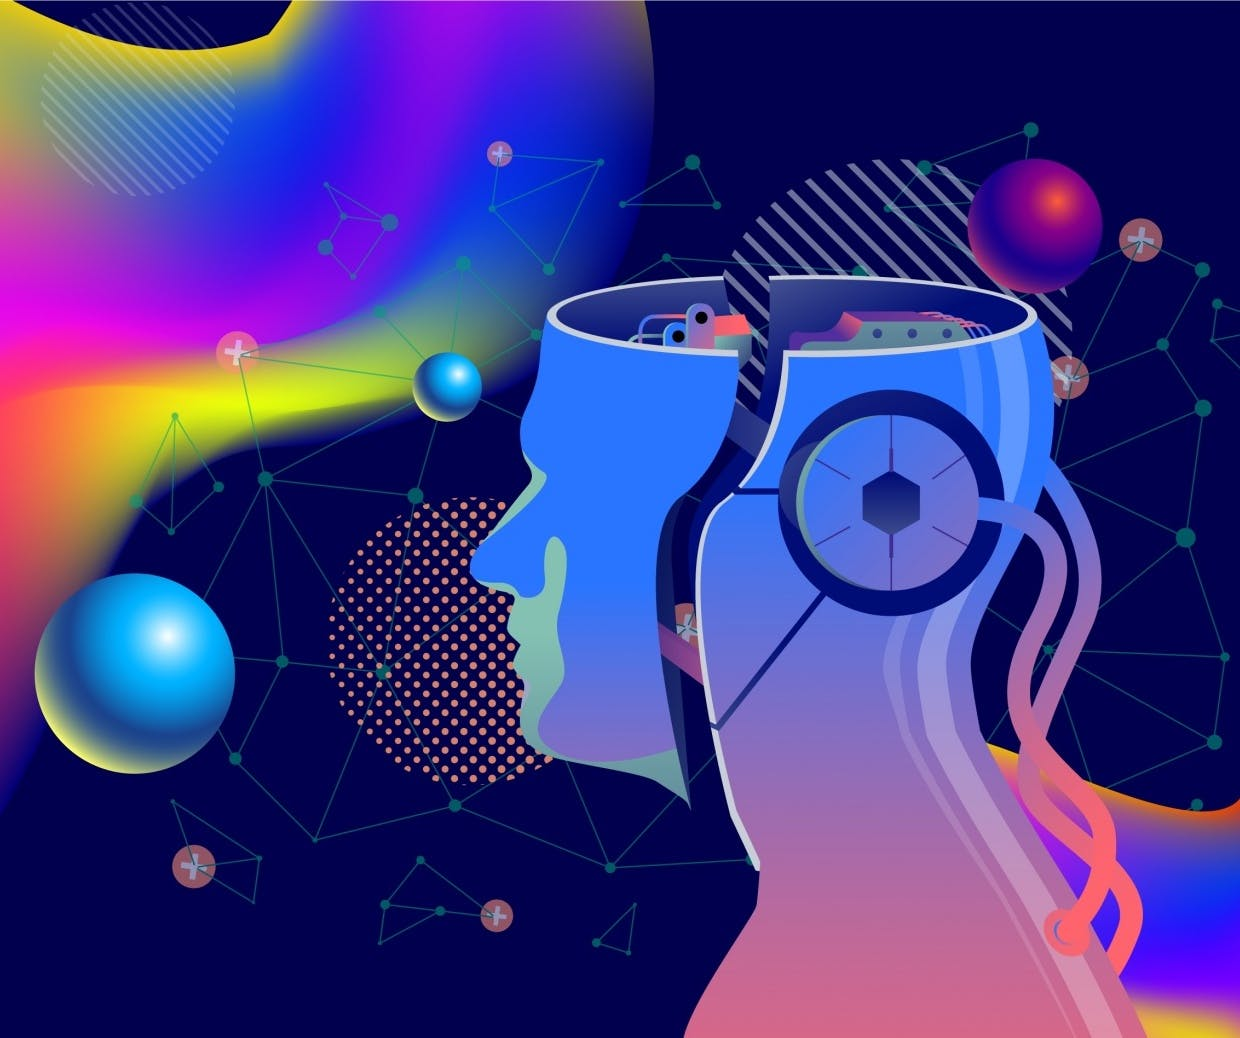 User experience will suffer without trust in AI – Marketing Week